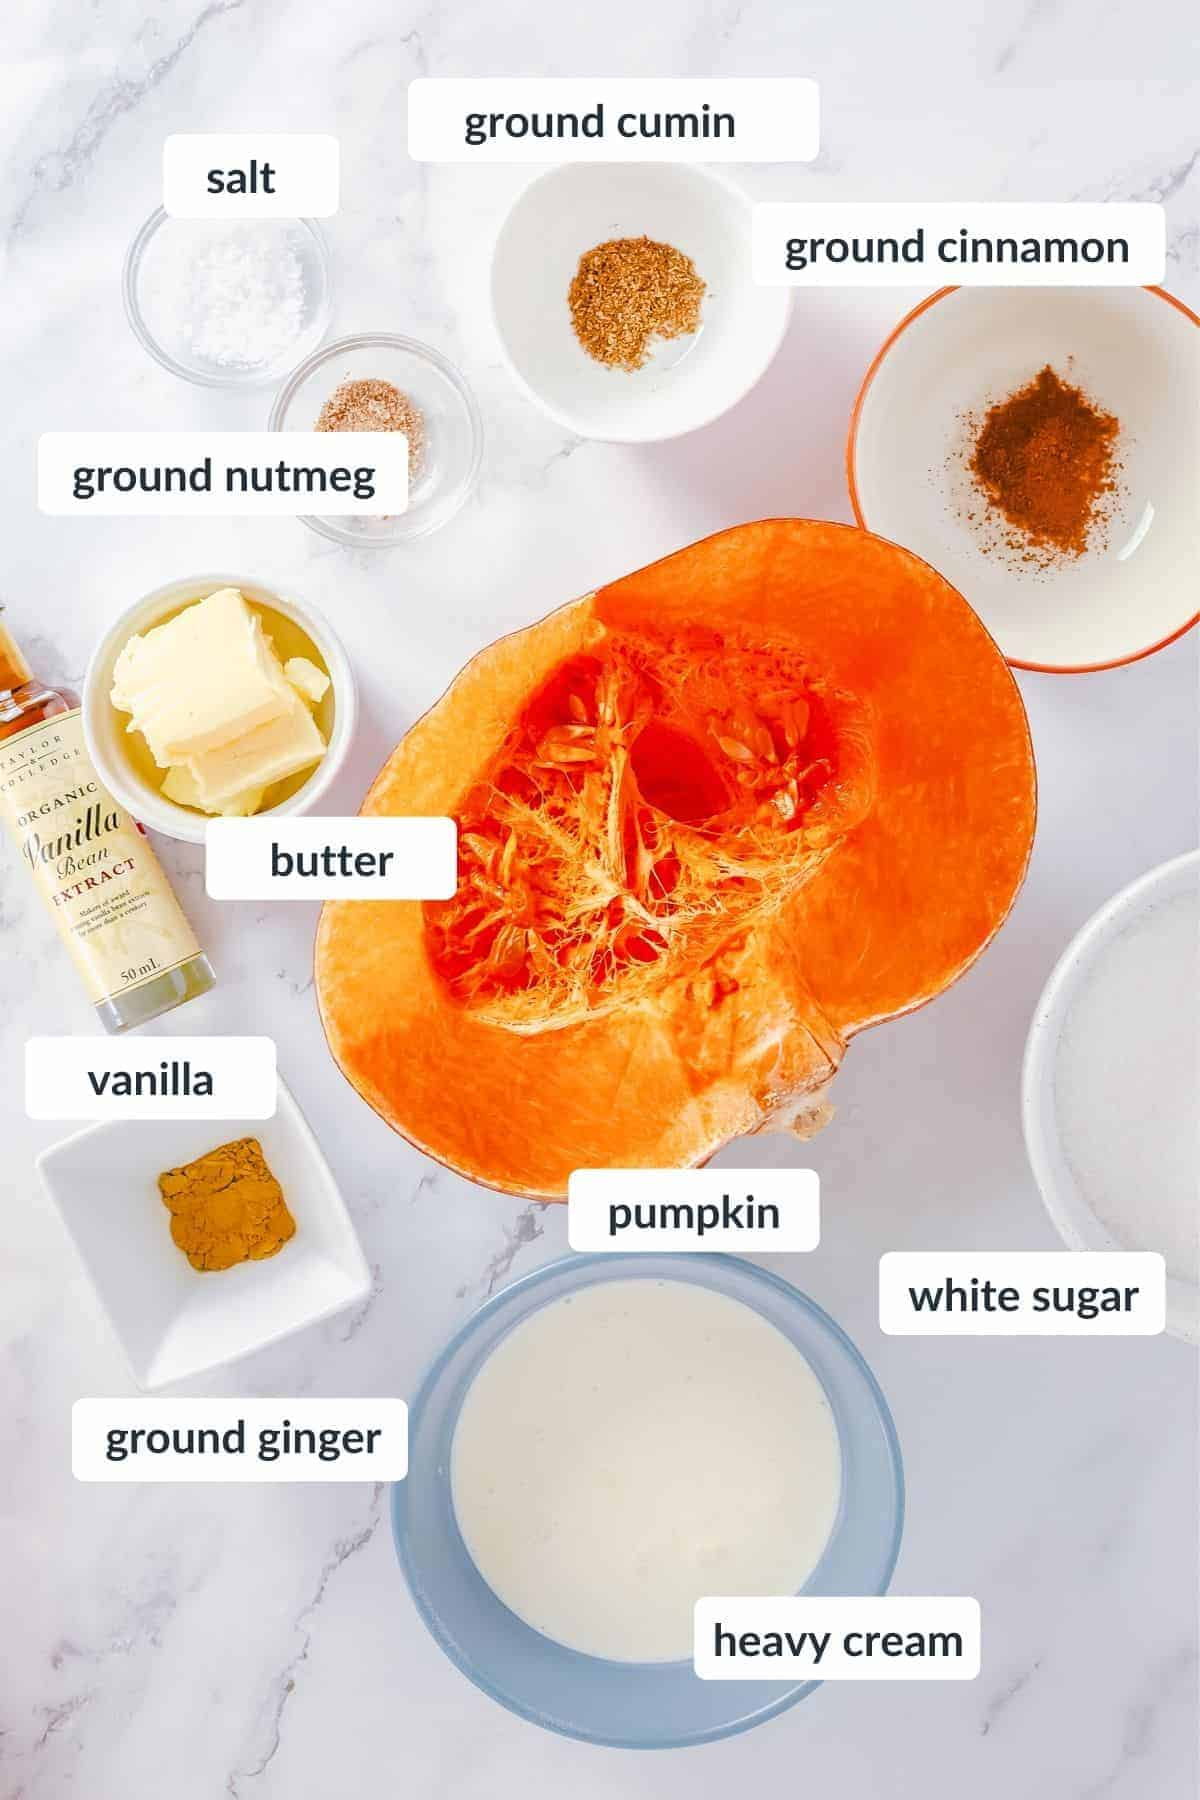 Ingredients for pumpkin caramel on a marble table